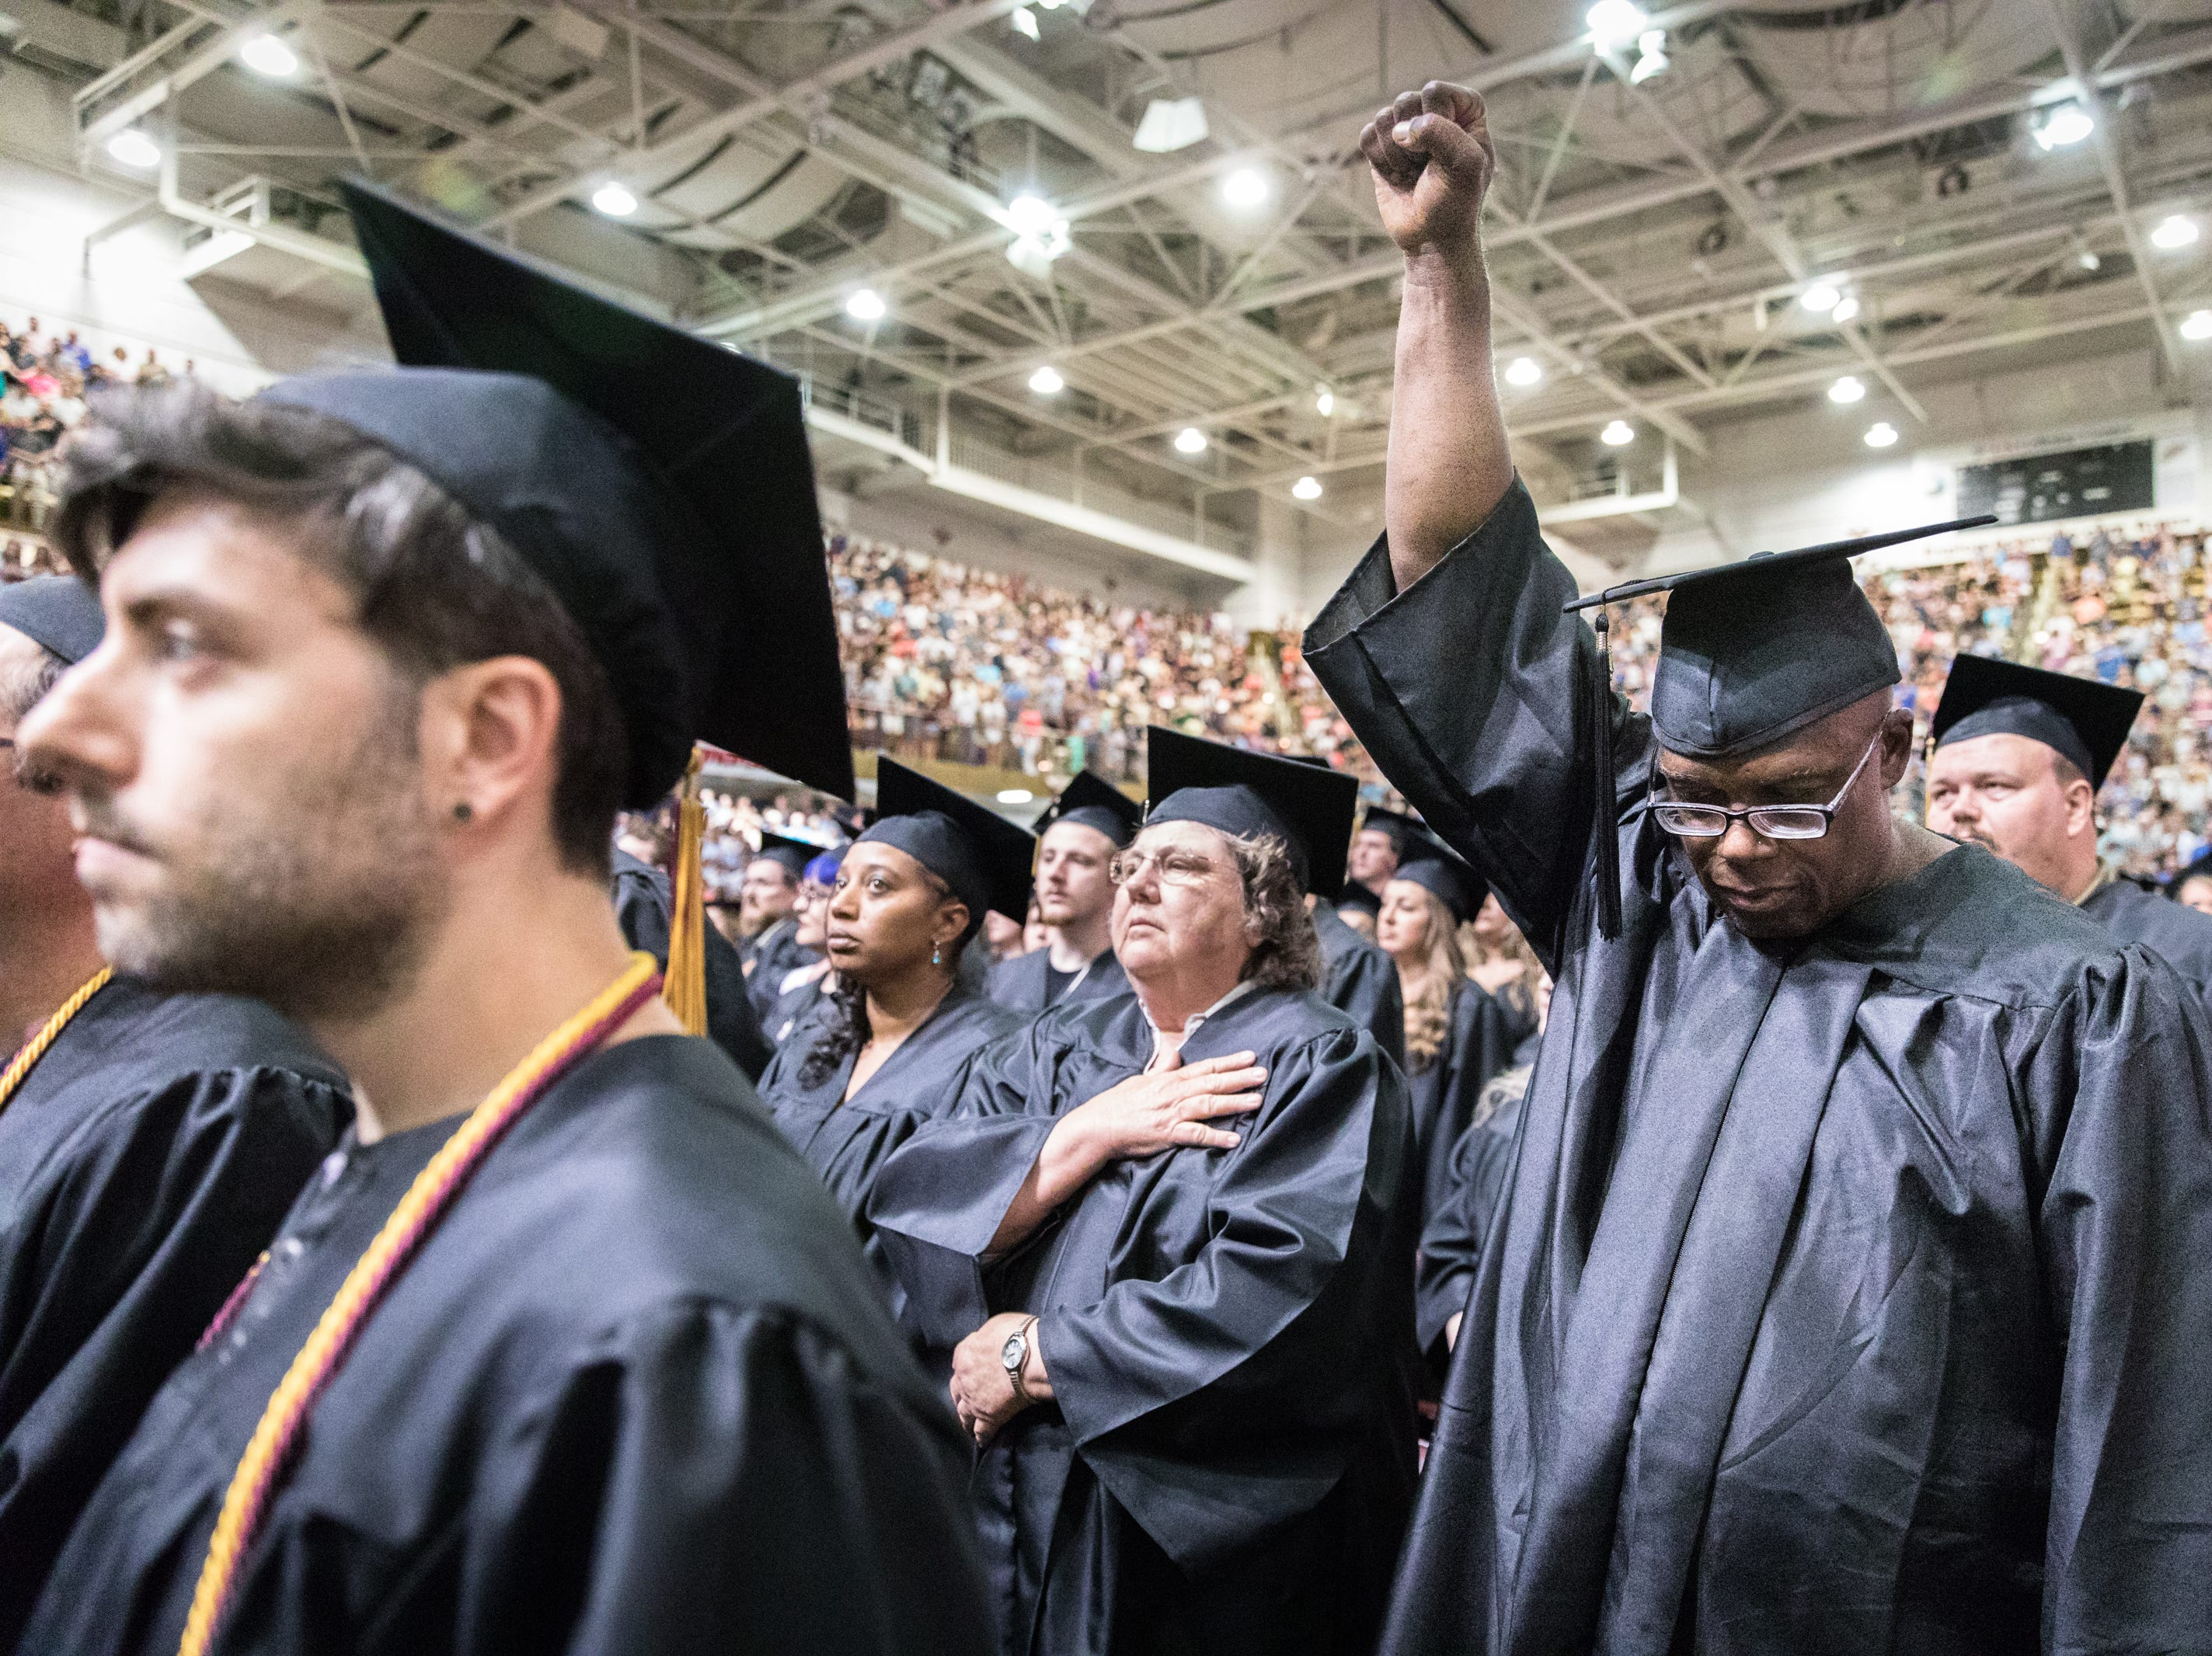 Idris Salaam, a prospective graduate of A-B Tech's hospitality management and culinary arts programs, raises his fist during the singing of the national anthem at their commencement at the U.S Cellular Center Saturday, May 12, 2018